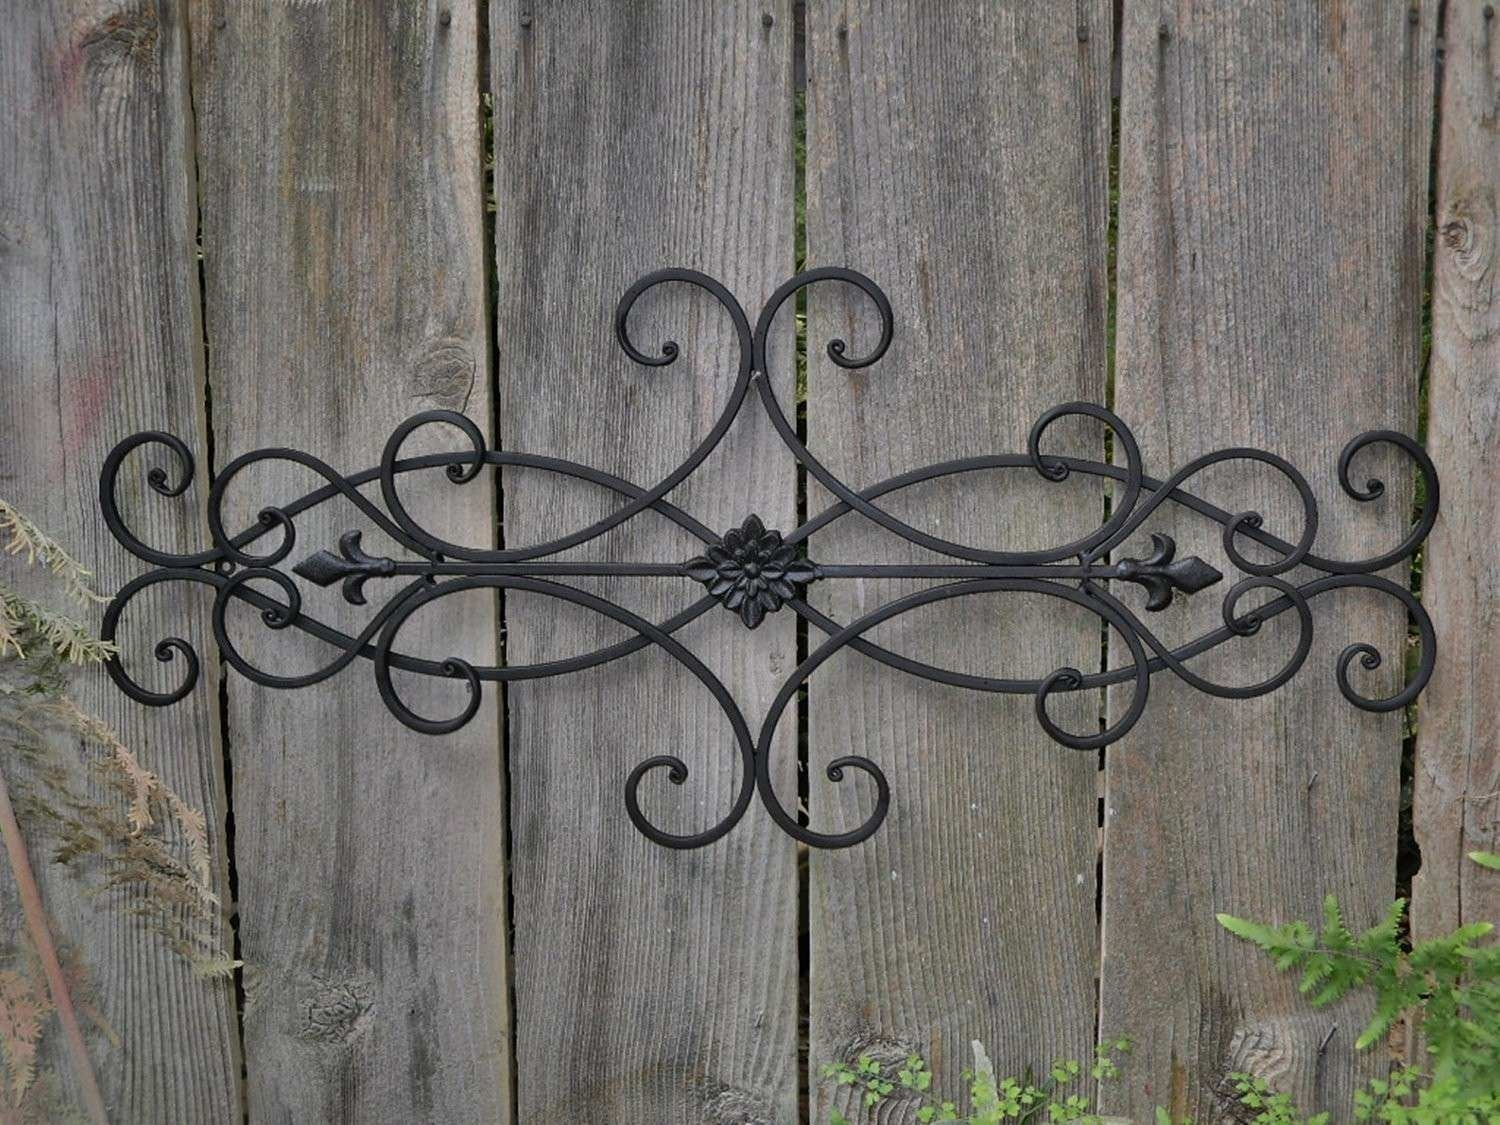 Metal Outdoor Wall Decor Elegant Good Outdoor Wall Art Wrought Iron With Regard To Metal Outdoor Wall Art (View 8 of 20)